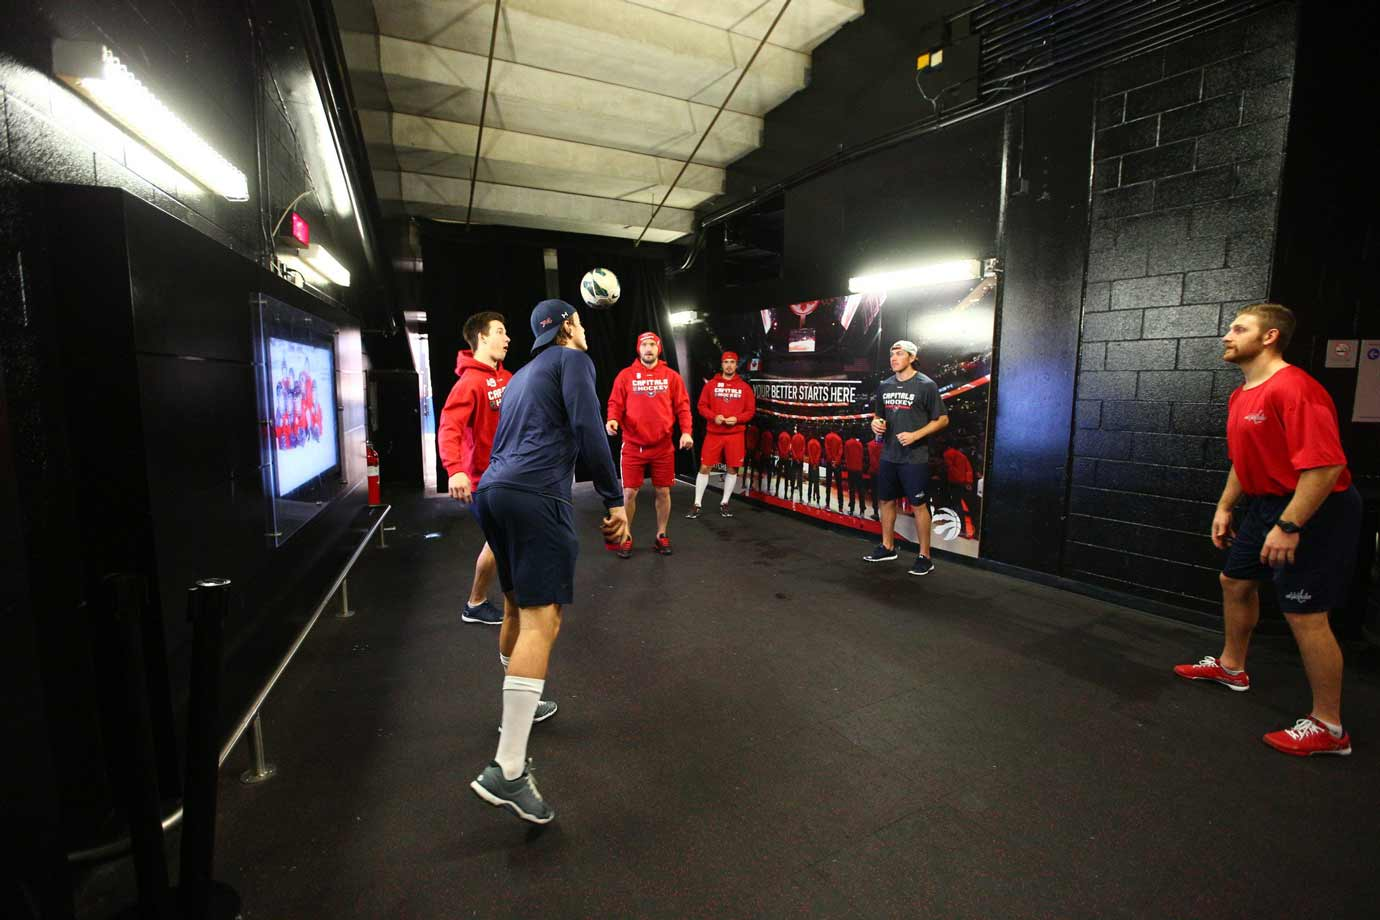 Some of the Caps warm up in the hallway outside their locker room by kicking a soccer ball around.